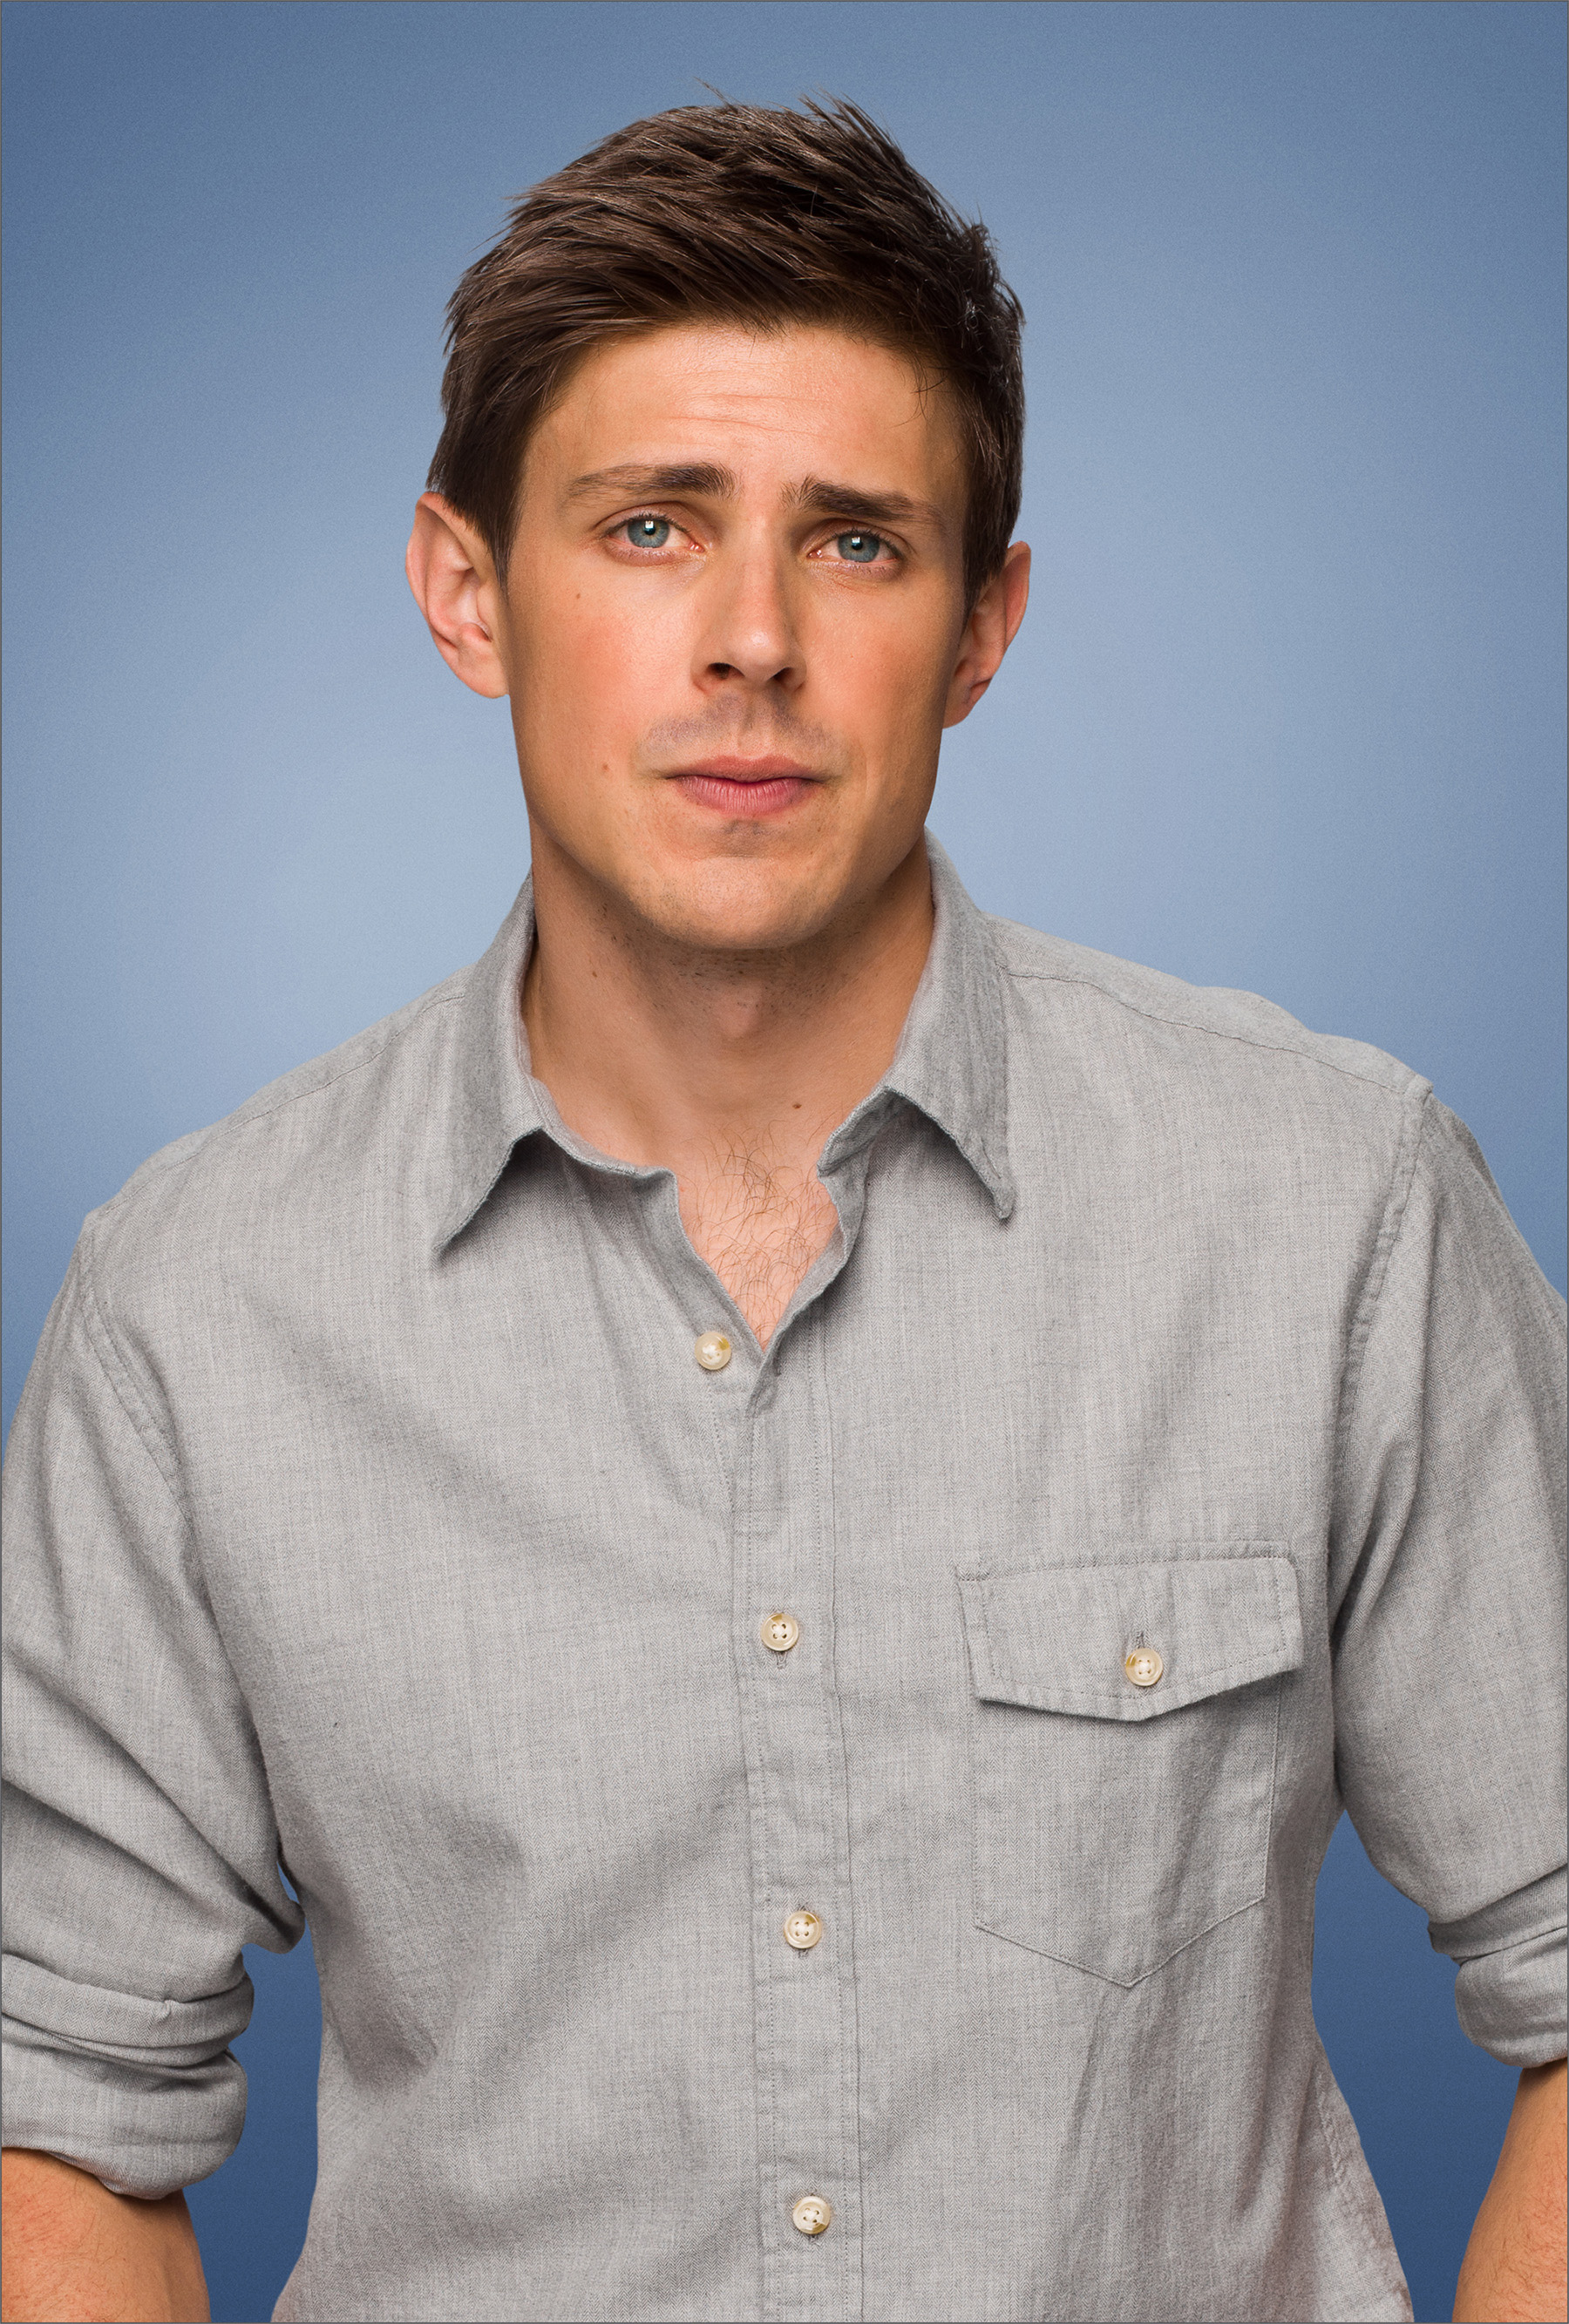 Chris Lowell enlisted